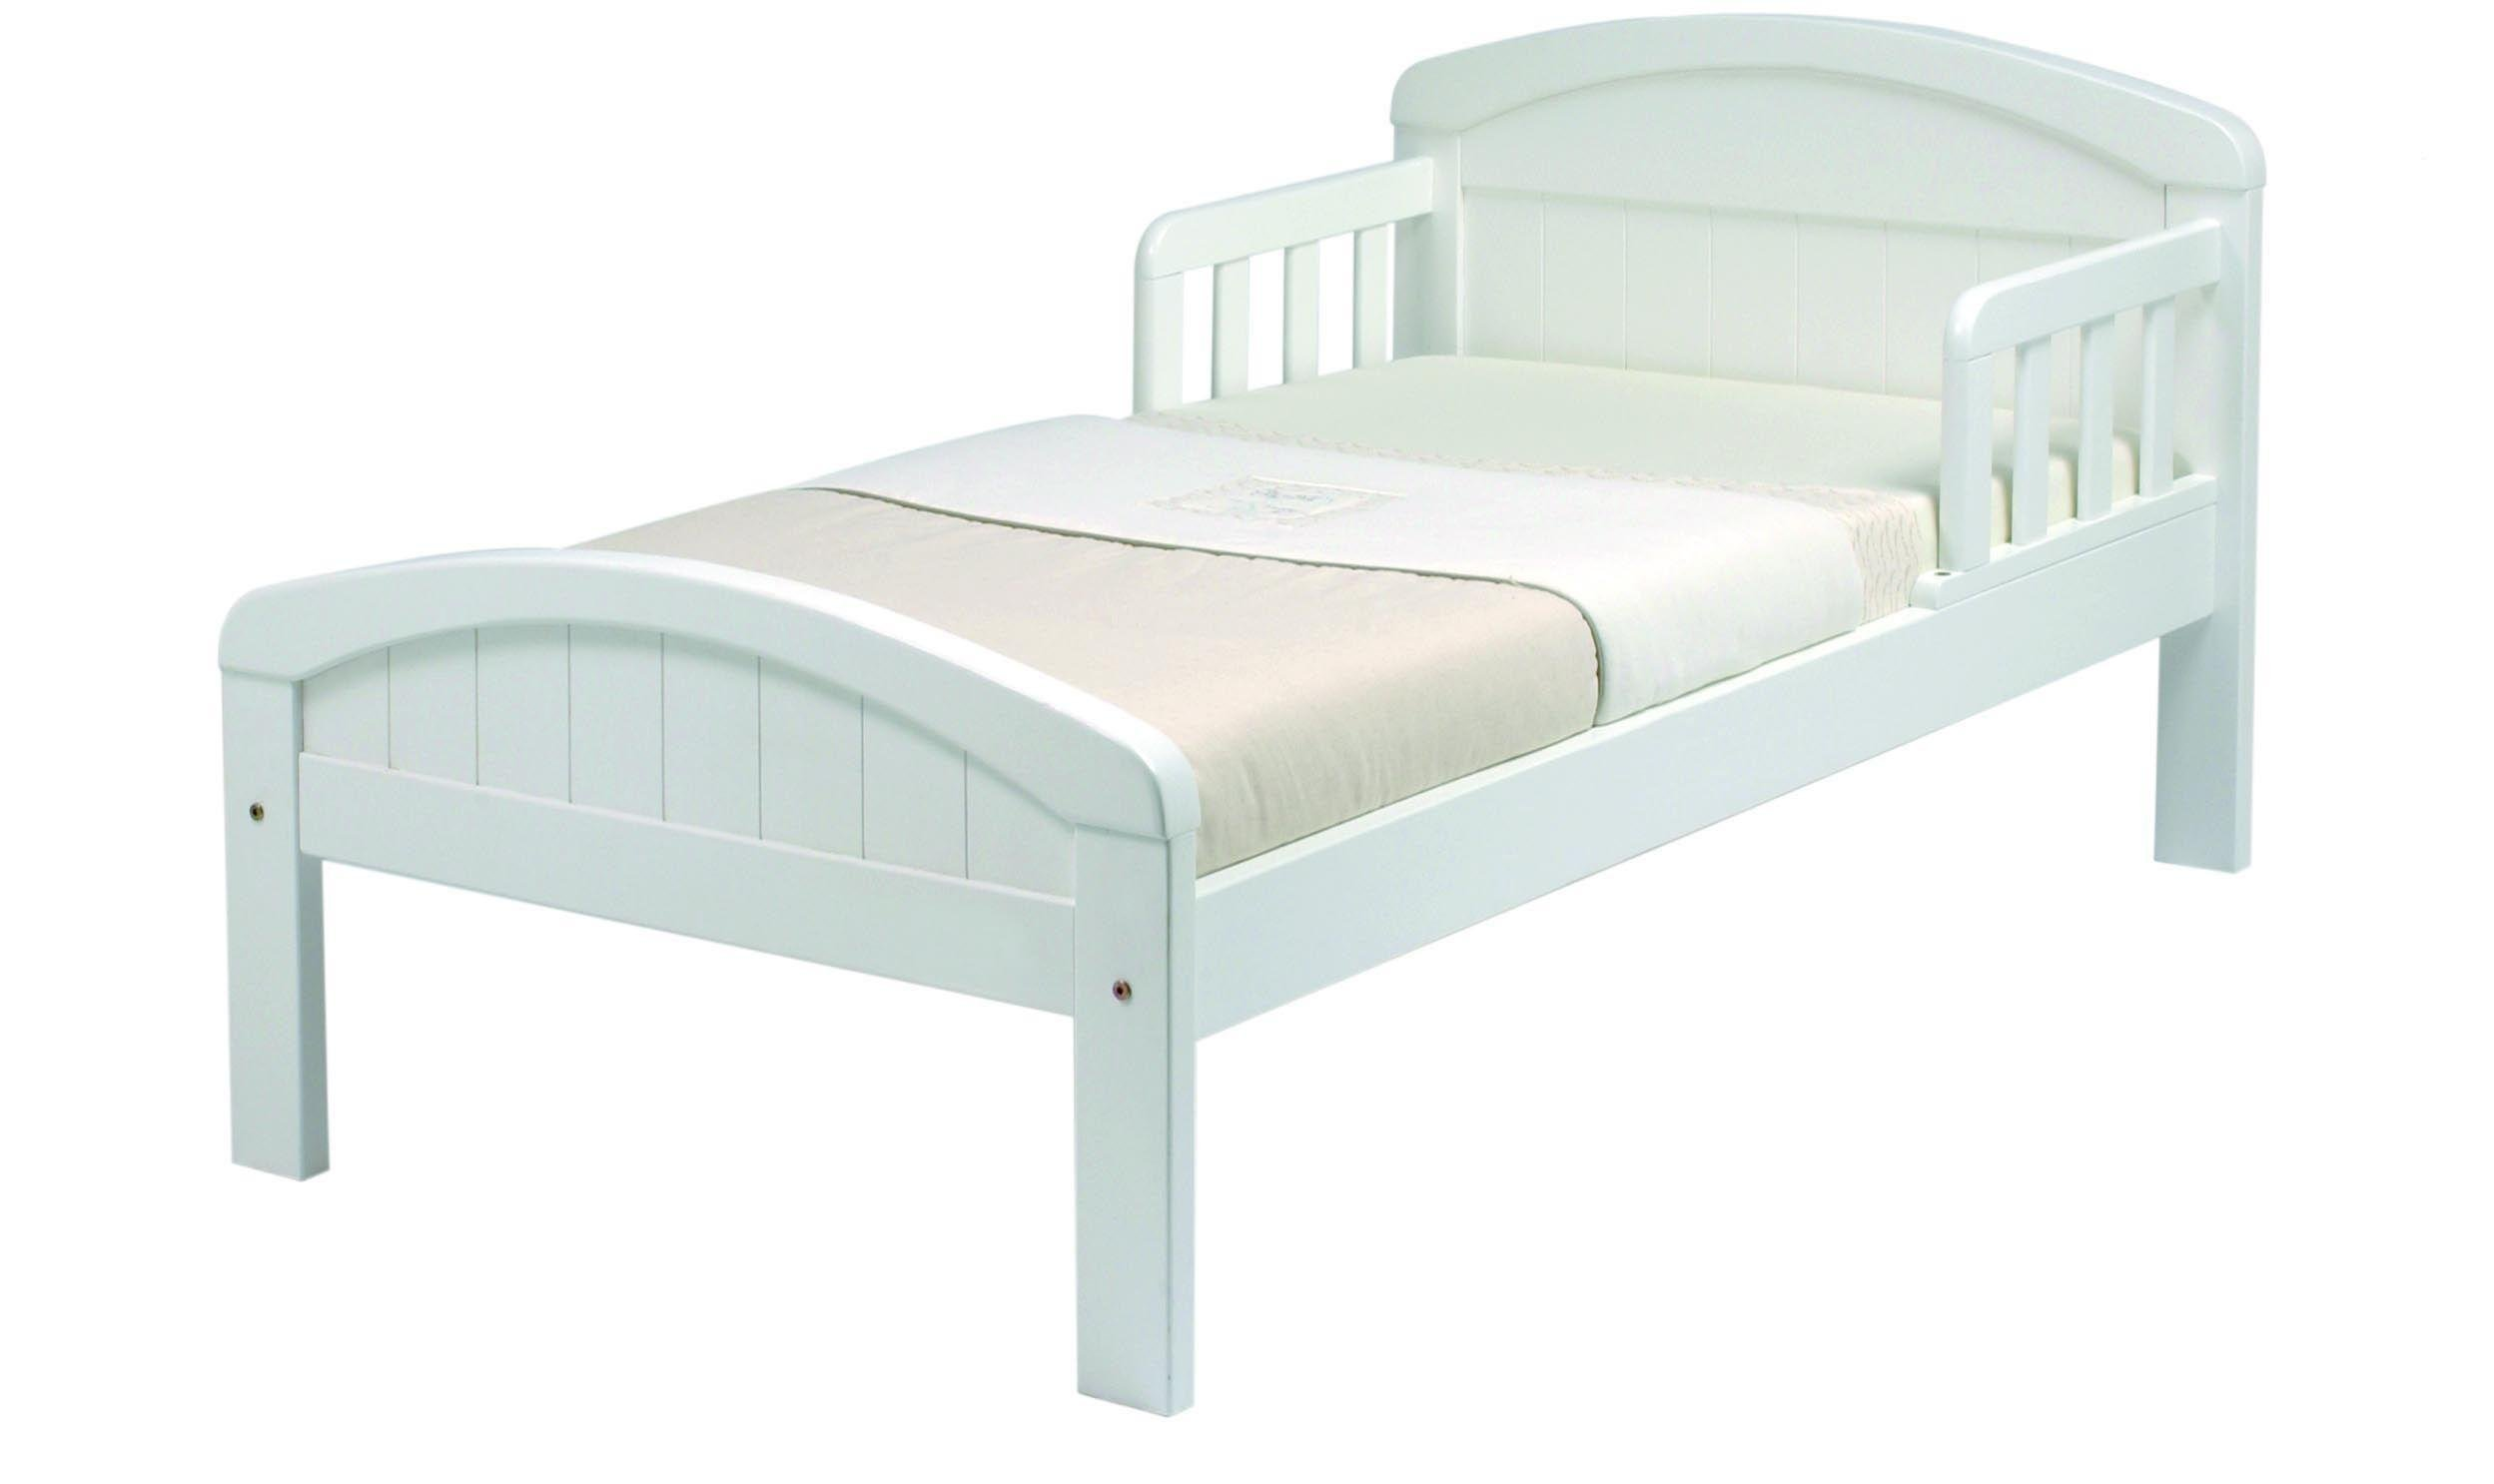 Image of East Coast Nursery Country Toddler Bed - White